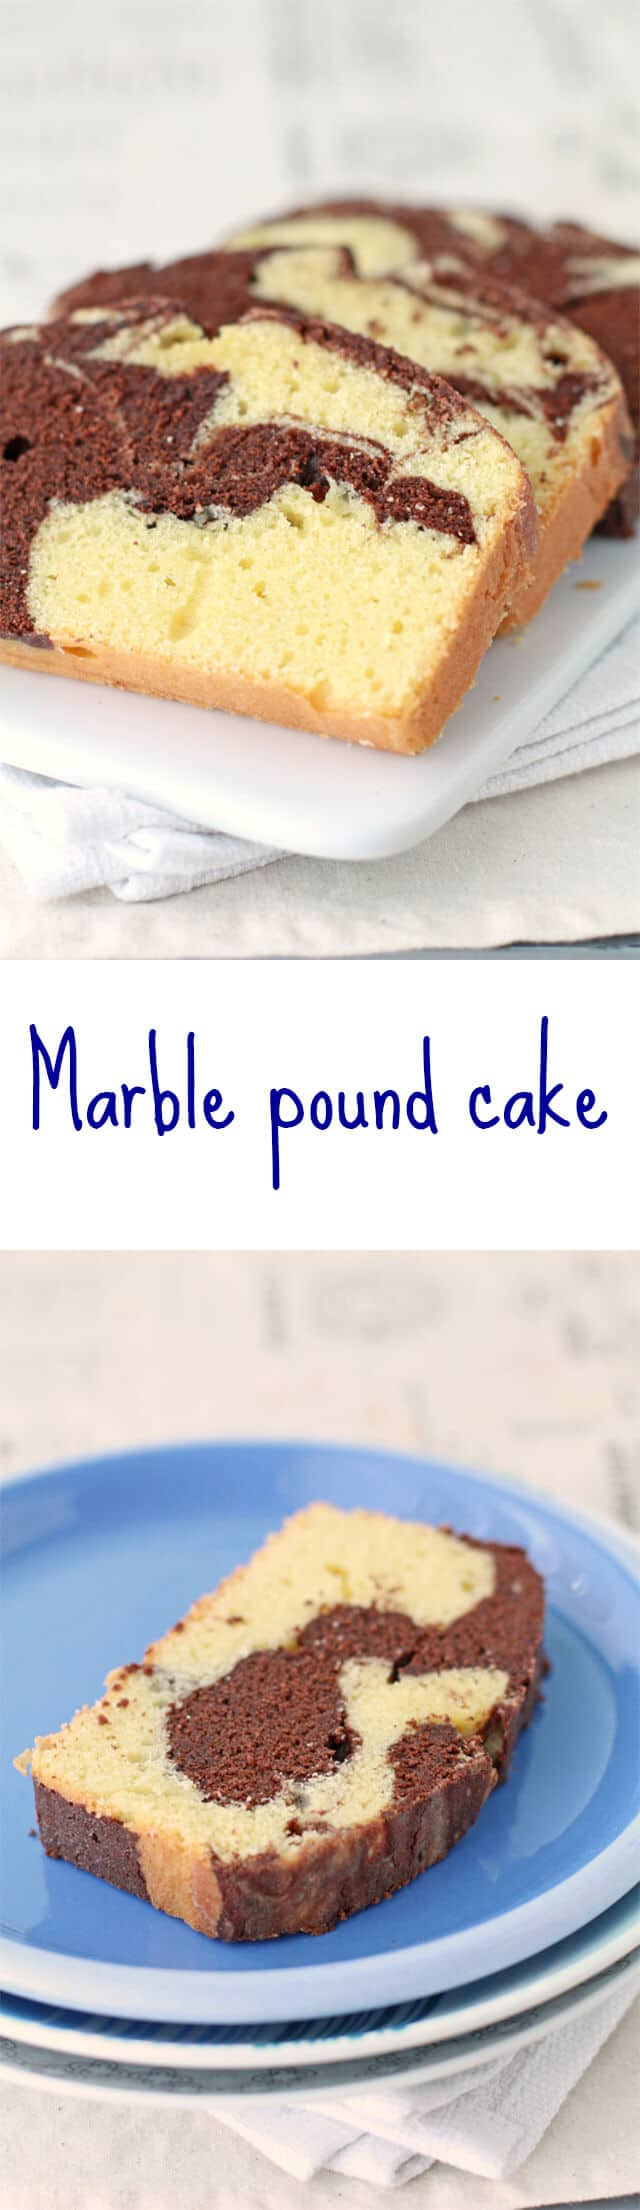 Chocolate and vanilla marble pound cake is the best marble cake recipe for-afternoon tea and makes a great snacking cake